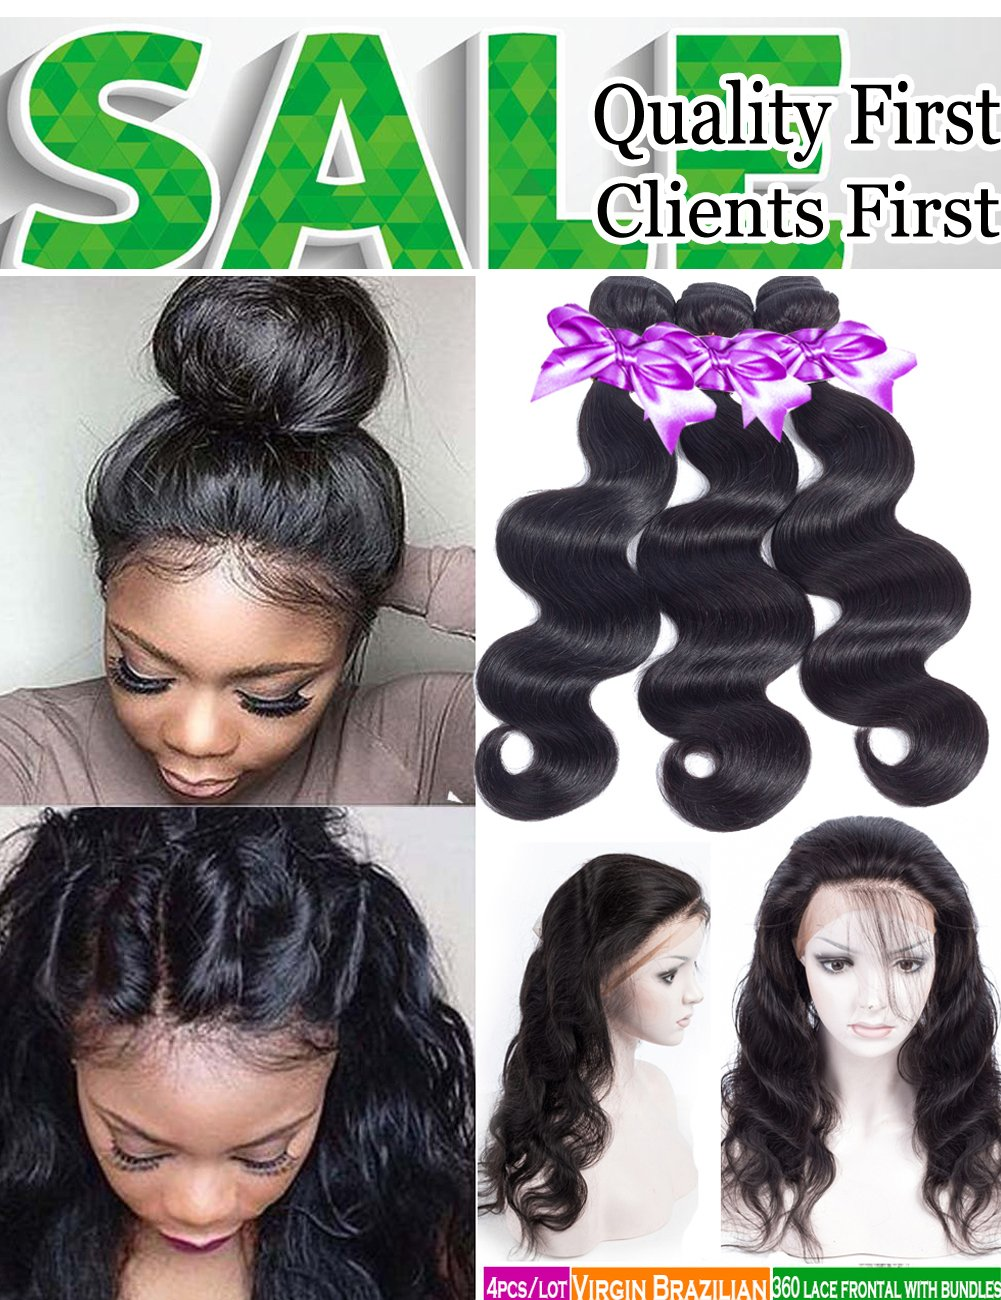 Brazilian Body Wave 3 Bundles With Closure Pre Plucked 360 Lace Frontal With Bundles 8A Unprocessed Brazilian Human Hair Bundles with Closure (16 18 20 with14'' 360 Frontal Closure)